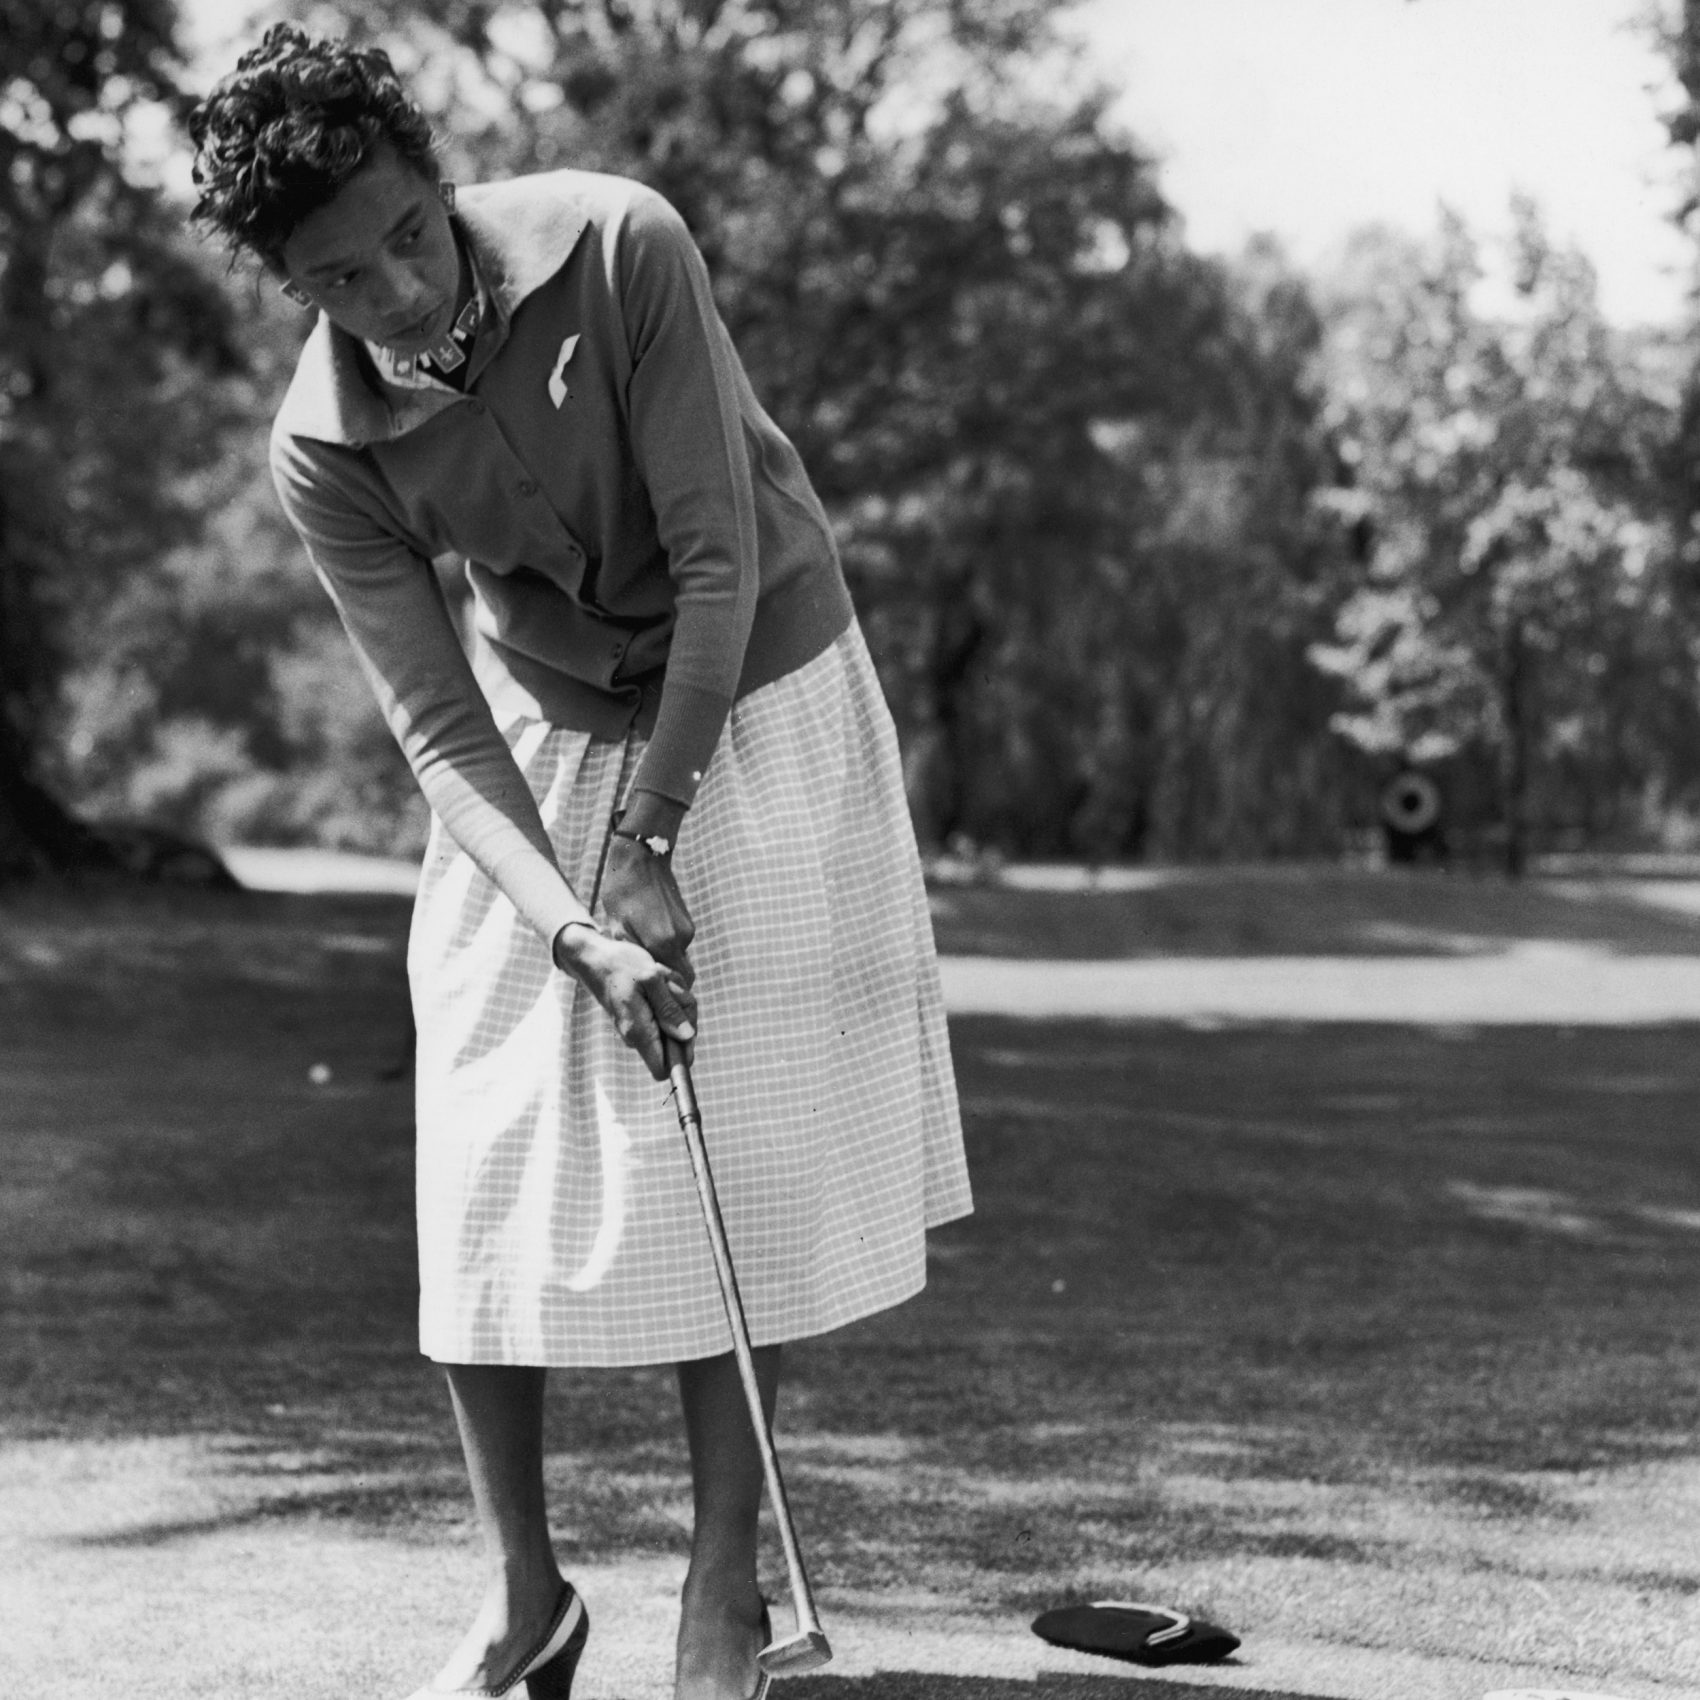 Althea Gibson was the No. 1 women's tennis player in the world. And then she left the game behind for golf. (Ron Burton/Keystone/Hulton Archive/Getty Images)